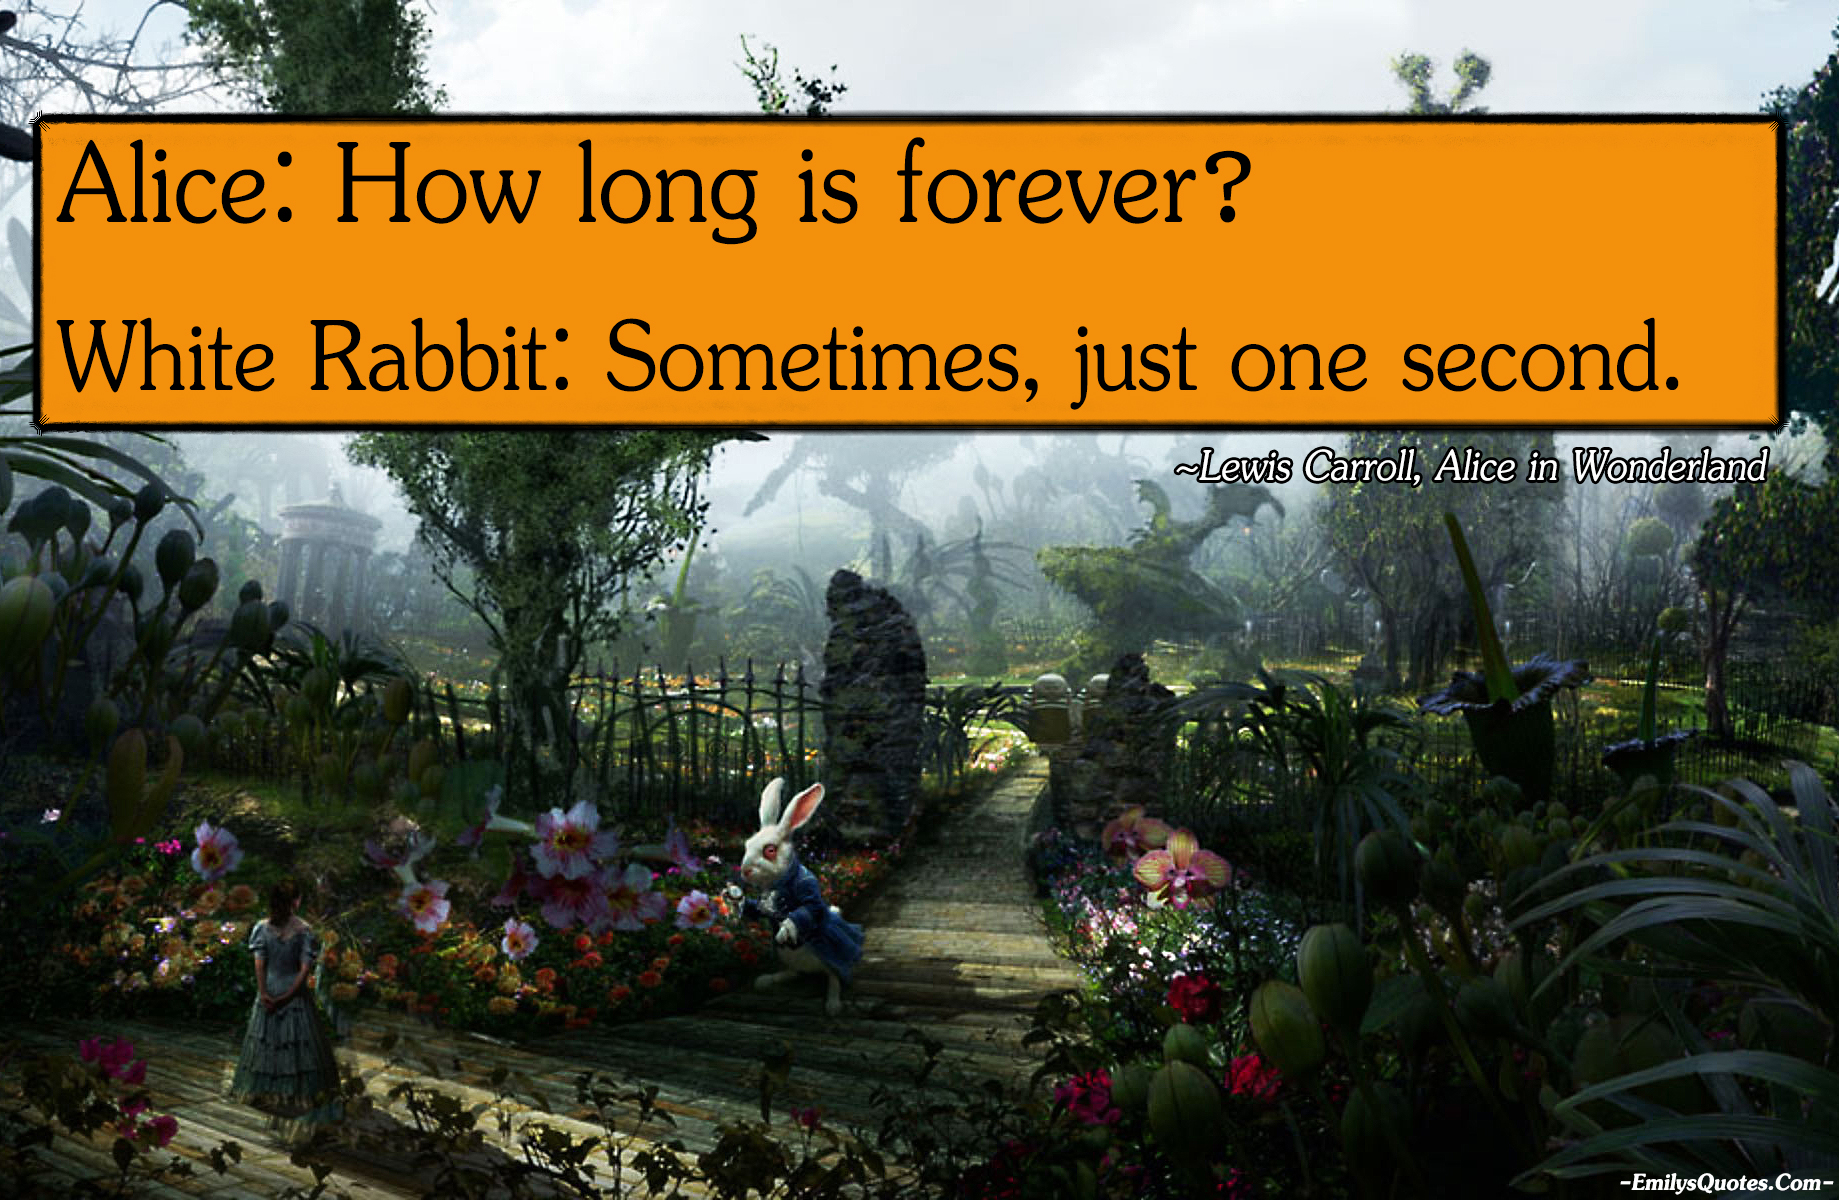 EmilysQuotes.Com - Lewis Carroll, Alice in Wonderland, time, question, inspirational, forever